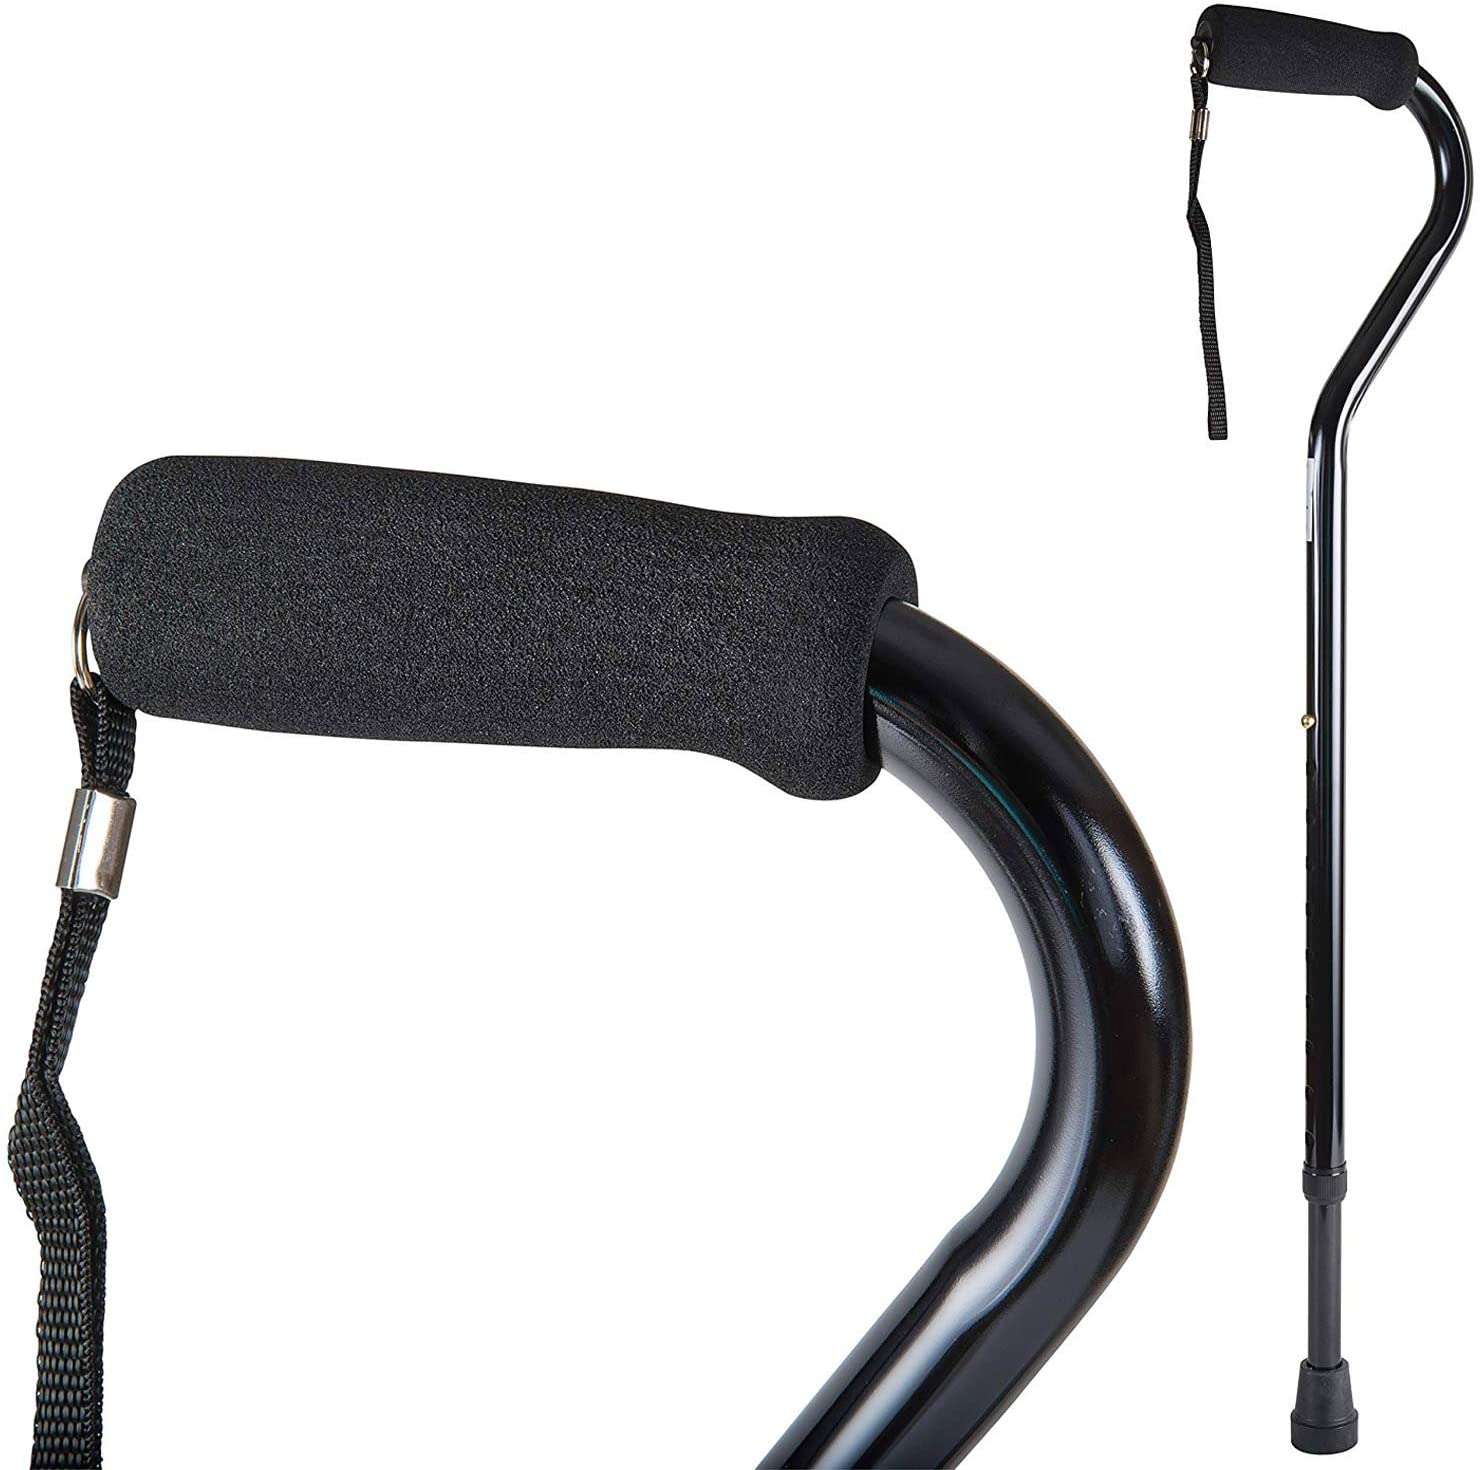 DMI Deluxe Lightweight Adjustable Walking Cane with Soft Foam Offset Hand Grip, For Men and Women, Black